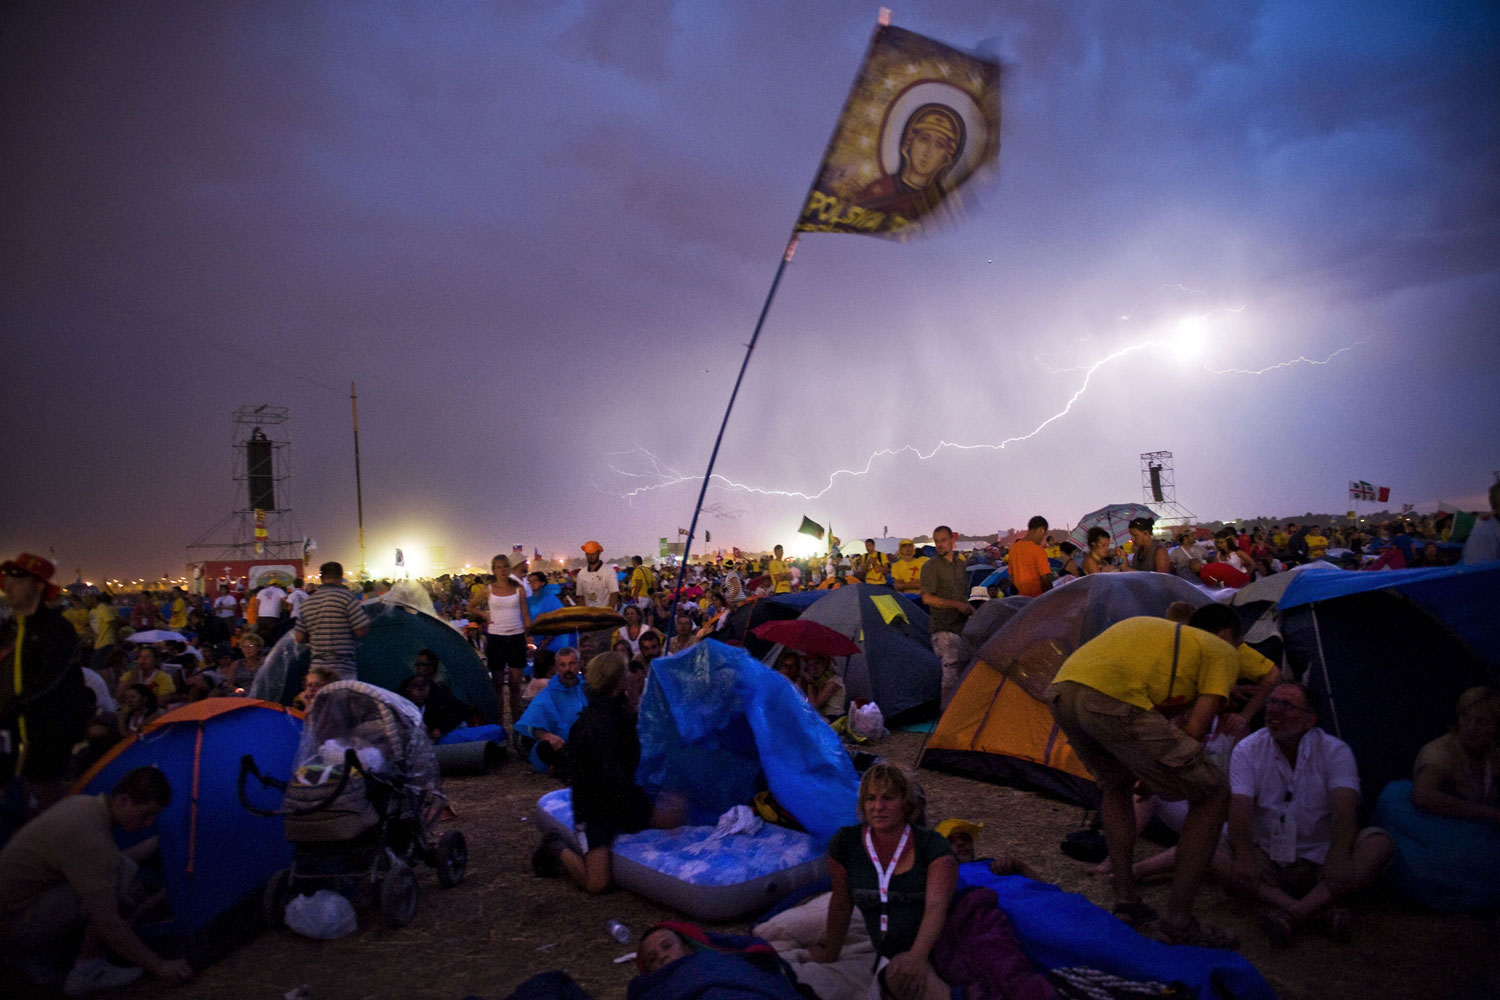 August 20, 2011. A storm illuminates the sky during a vigil in Madrid, part of World Youth Day 2011. Begun by Pope John PaulII in 1985, Catholic World Youth Day events are held every three years in a differentcountry.